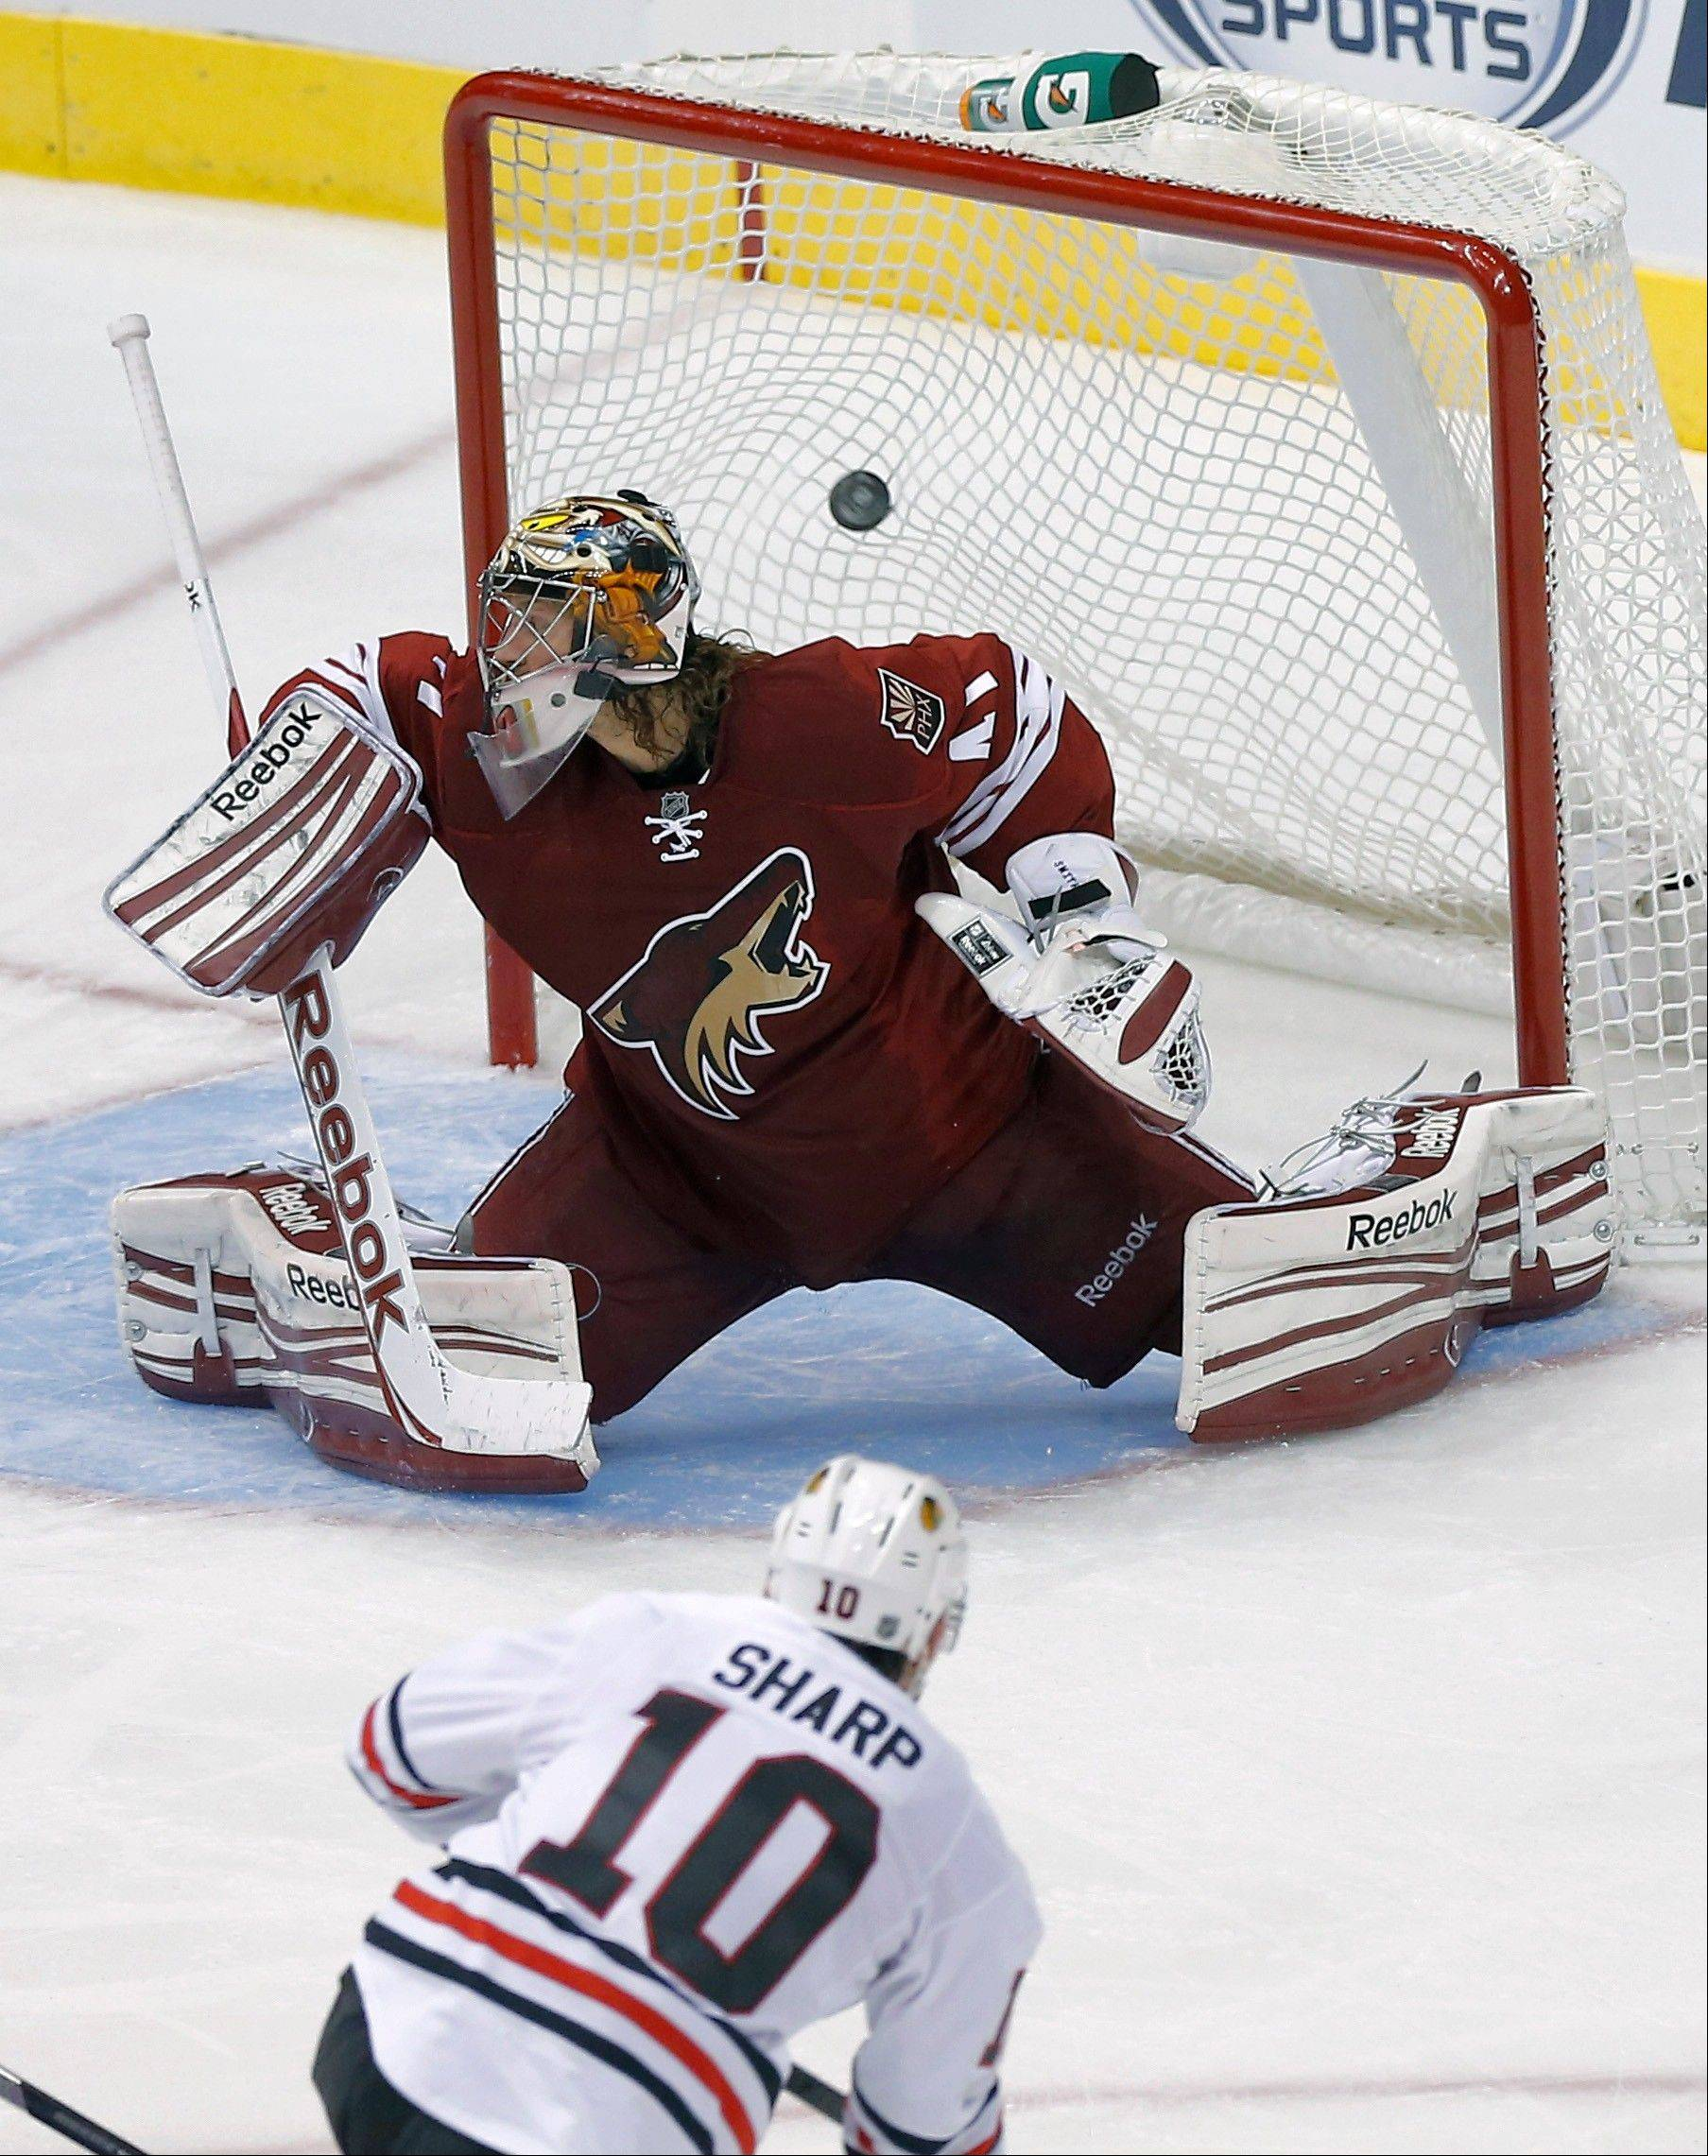 For the second game of the shortened NHL season, Patrick Sharp (10) scored a goal against Phoenix Coyotes goalie Mike Smith in Glendale, Ariz. Phoenix knocked the Hawks out of the 2012 playoffs, but Chicago won this rematch 6-4.